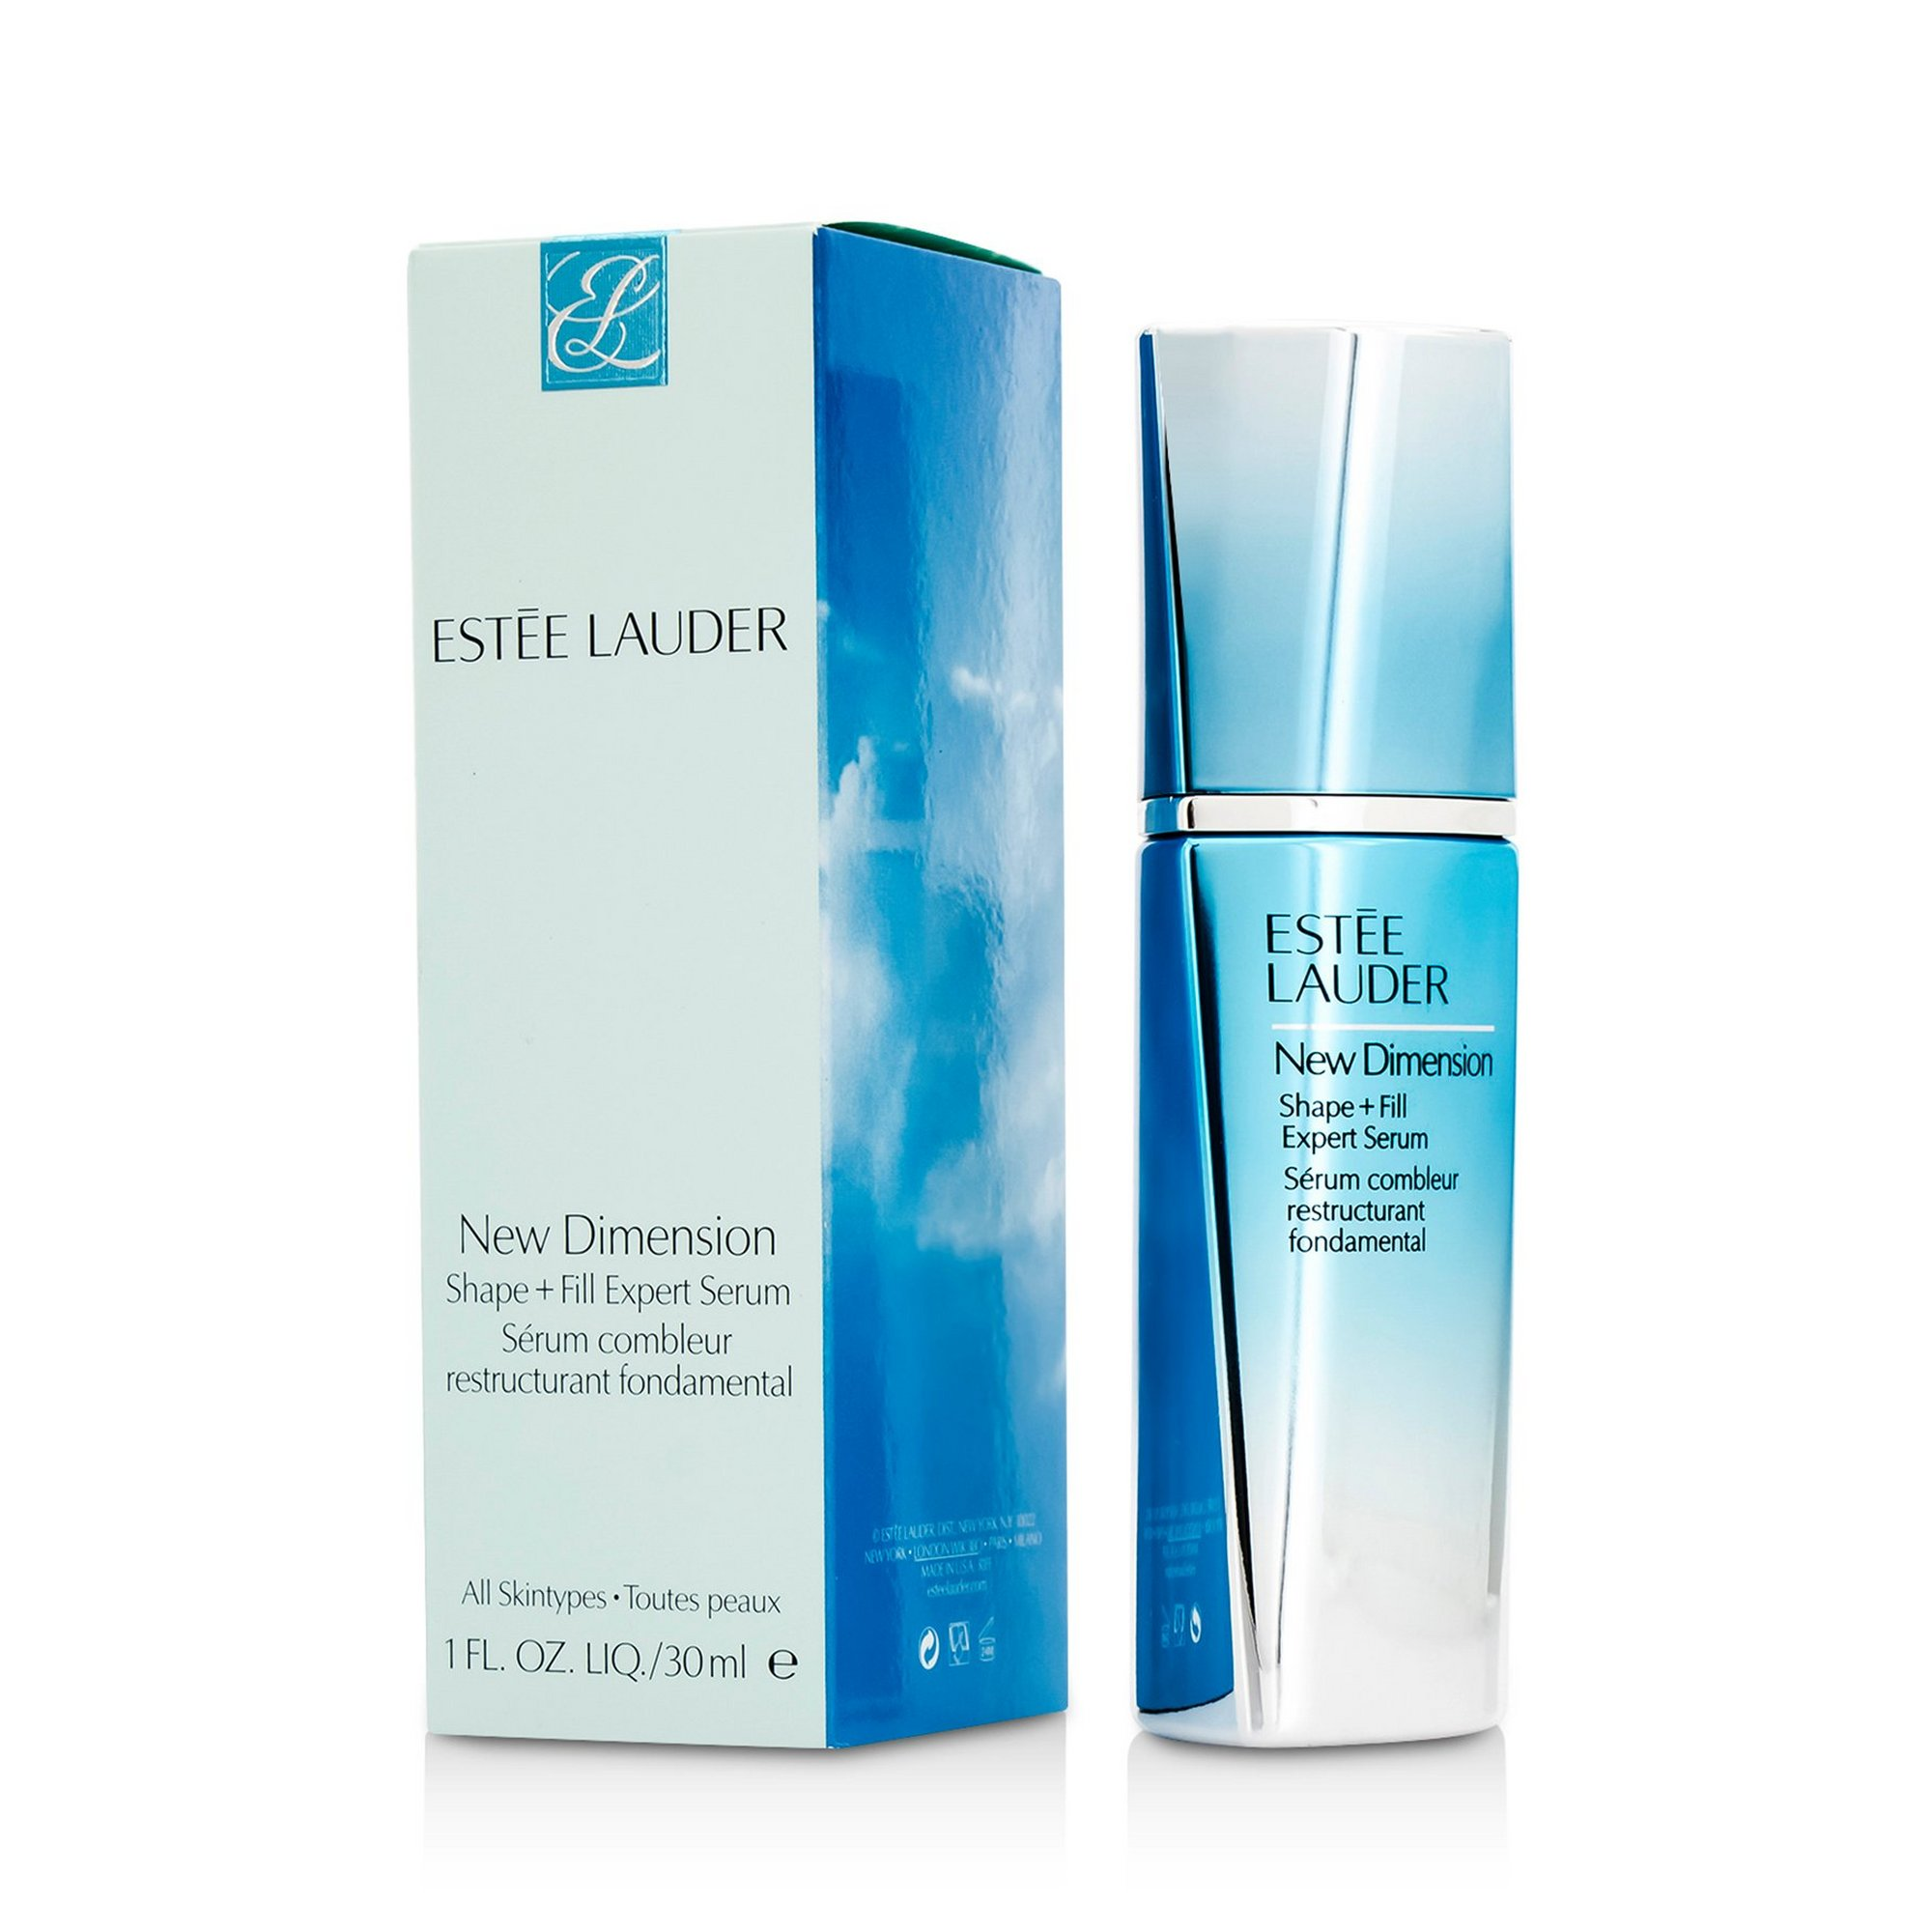 Image of Estee Lauder New Dimension Shape + Fill Expert Serum